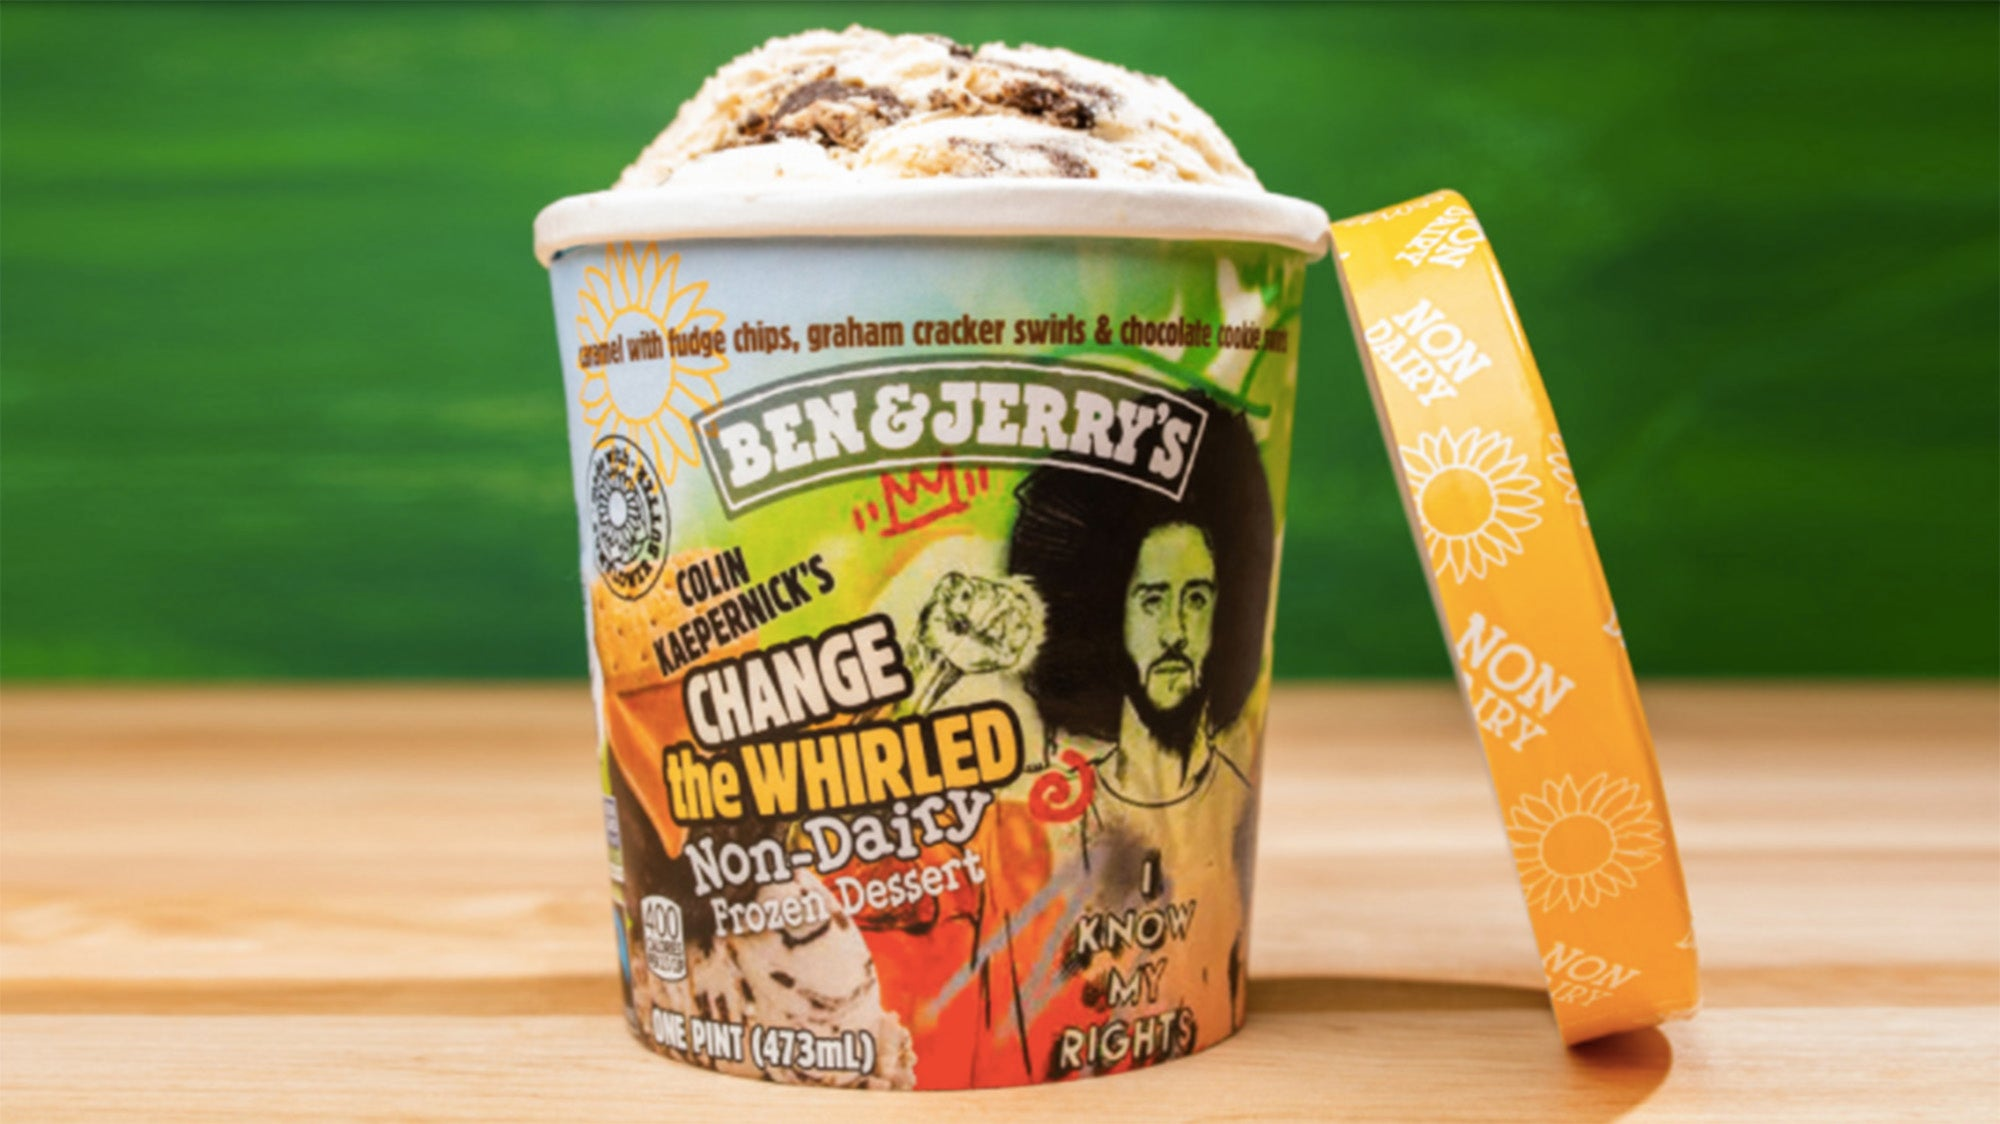 Change the Whirled from Ben & Jerry's